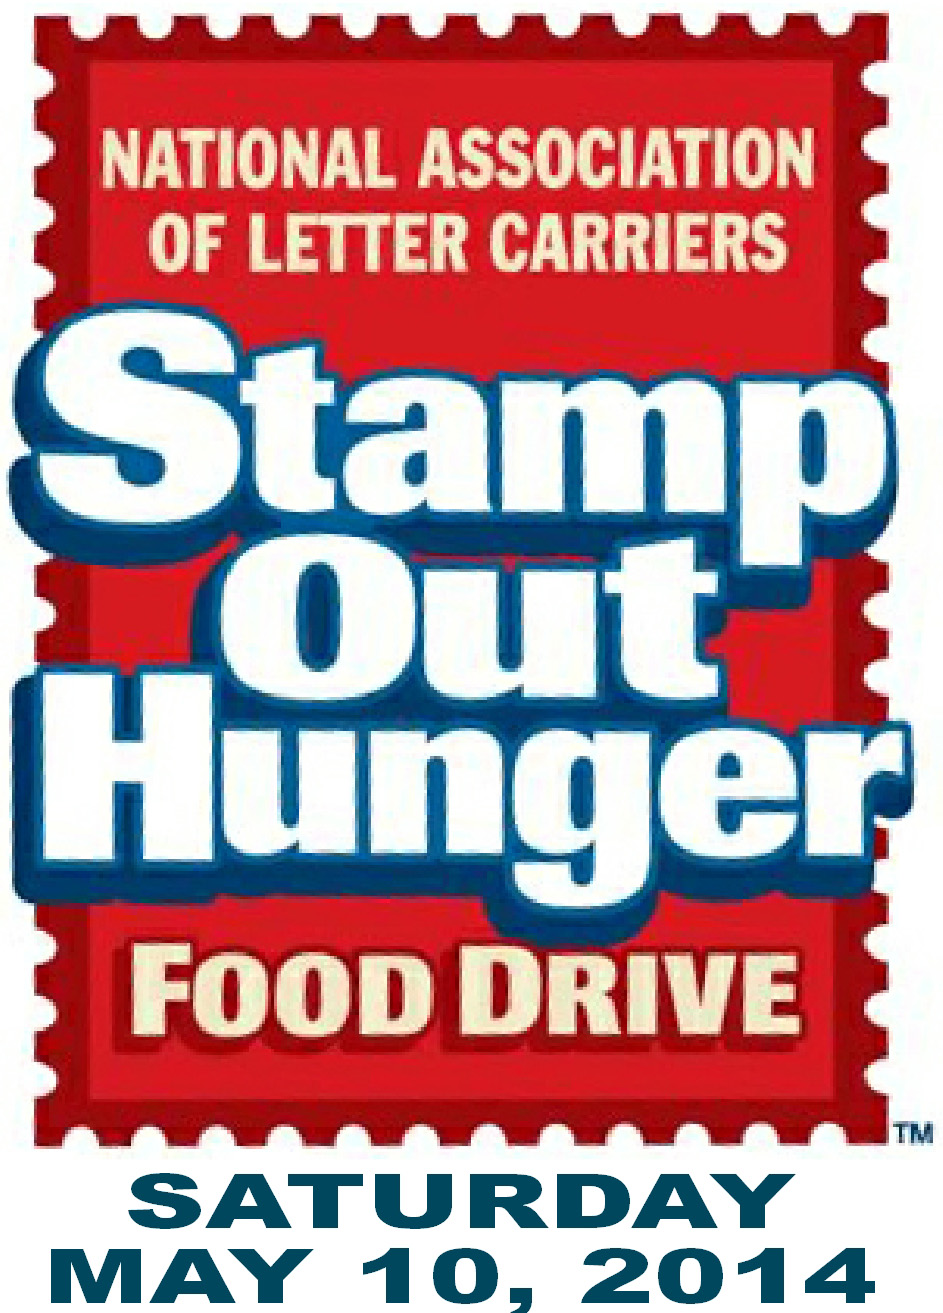 National Letter Carriers Food Drive